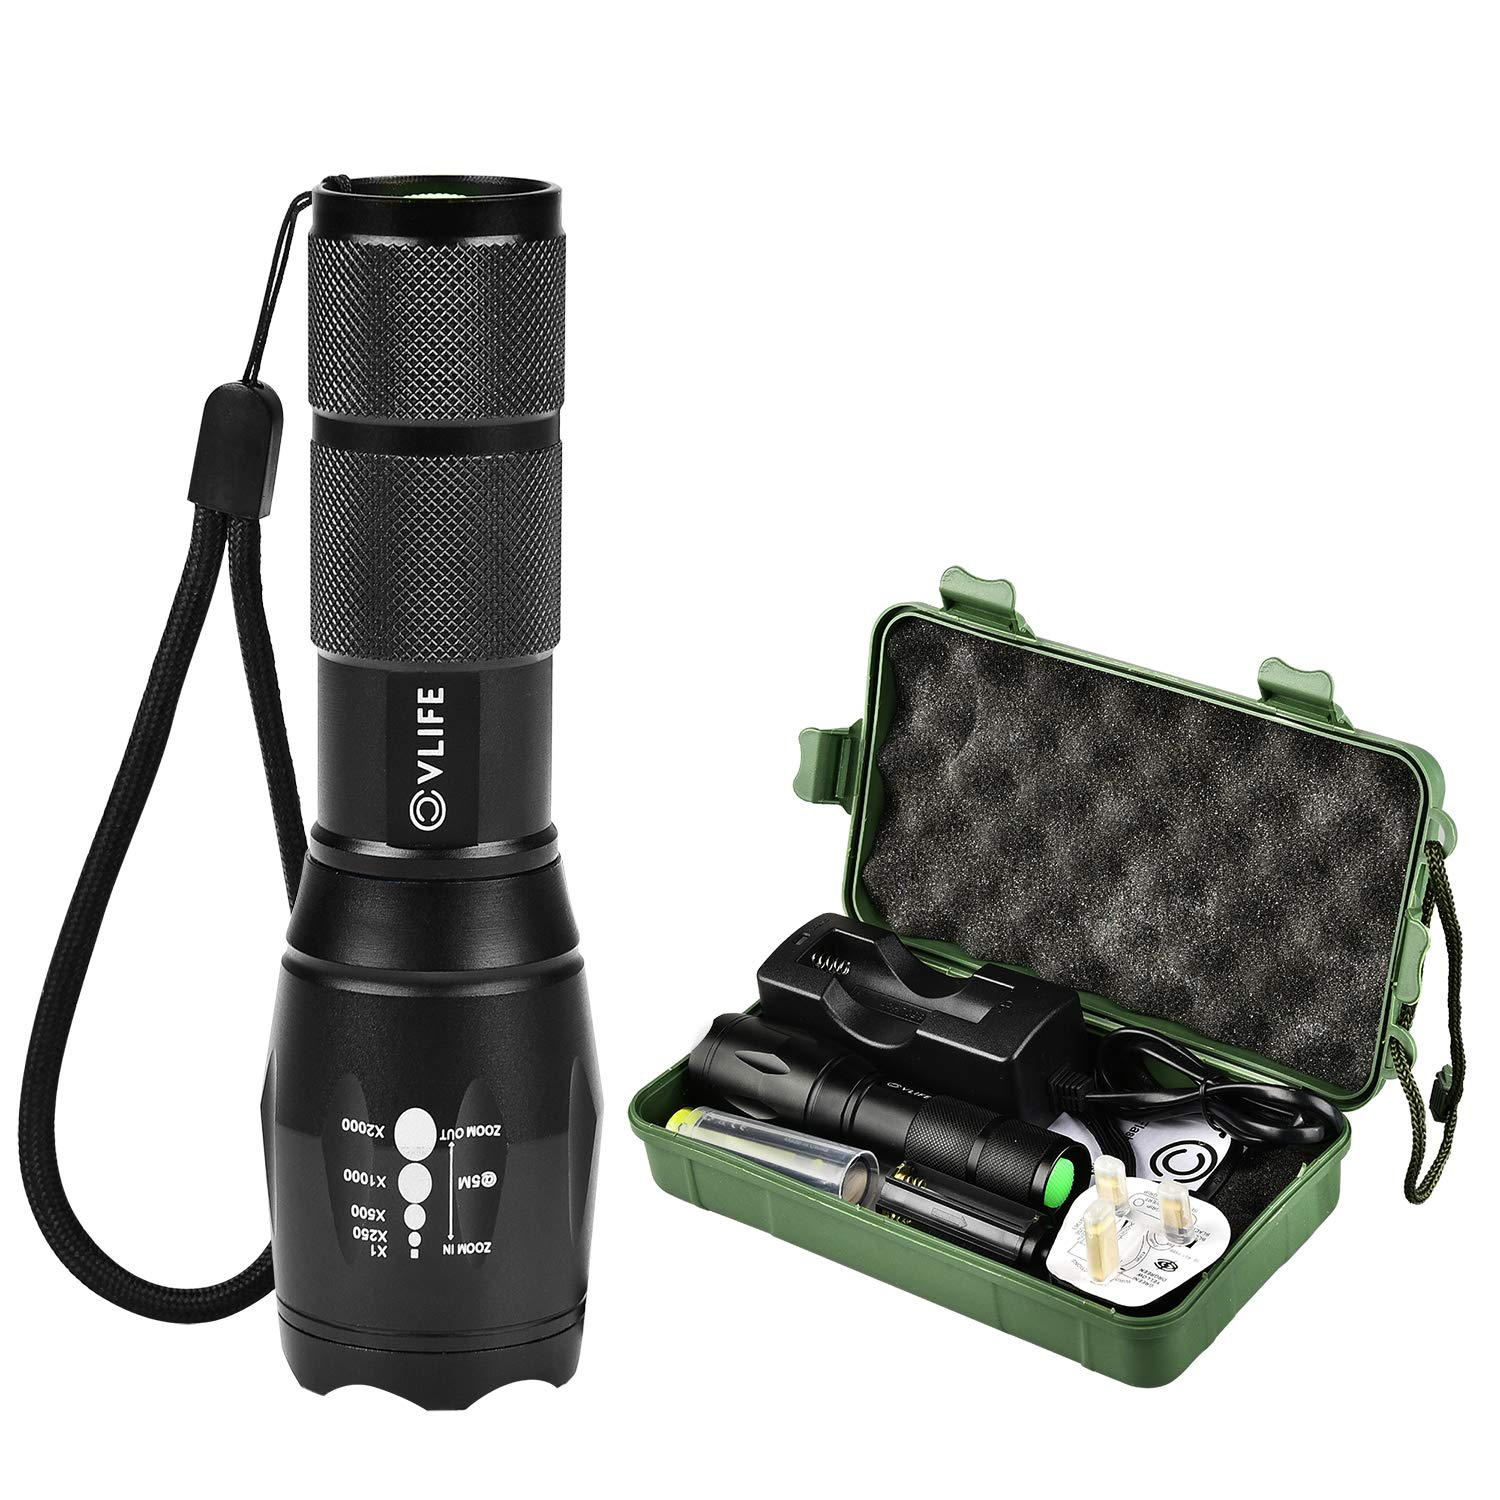 CVLIFE Tactical Torch CREE T6 LED Torch Lamp Portable Rechargeable Zoomable Waterproof Flashlight with One 18650 Battery & A Charger